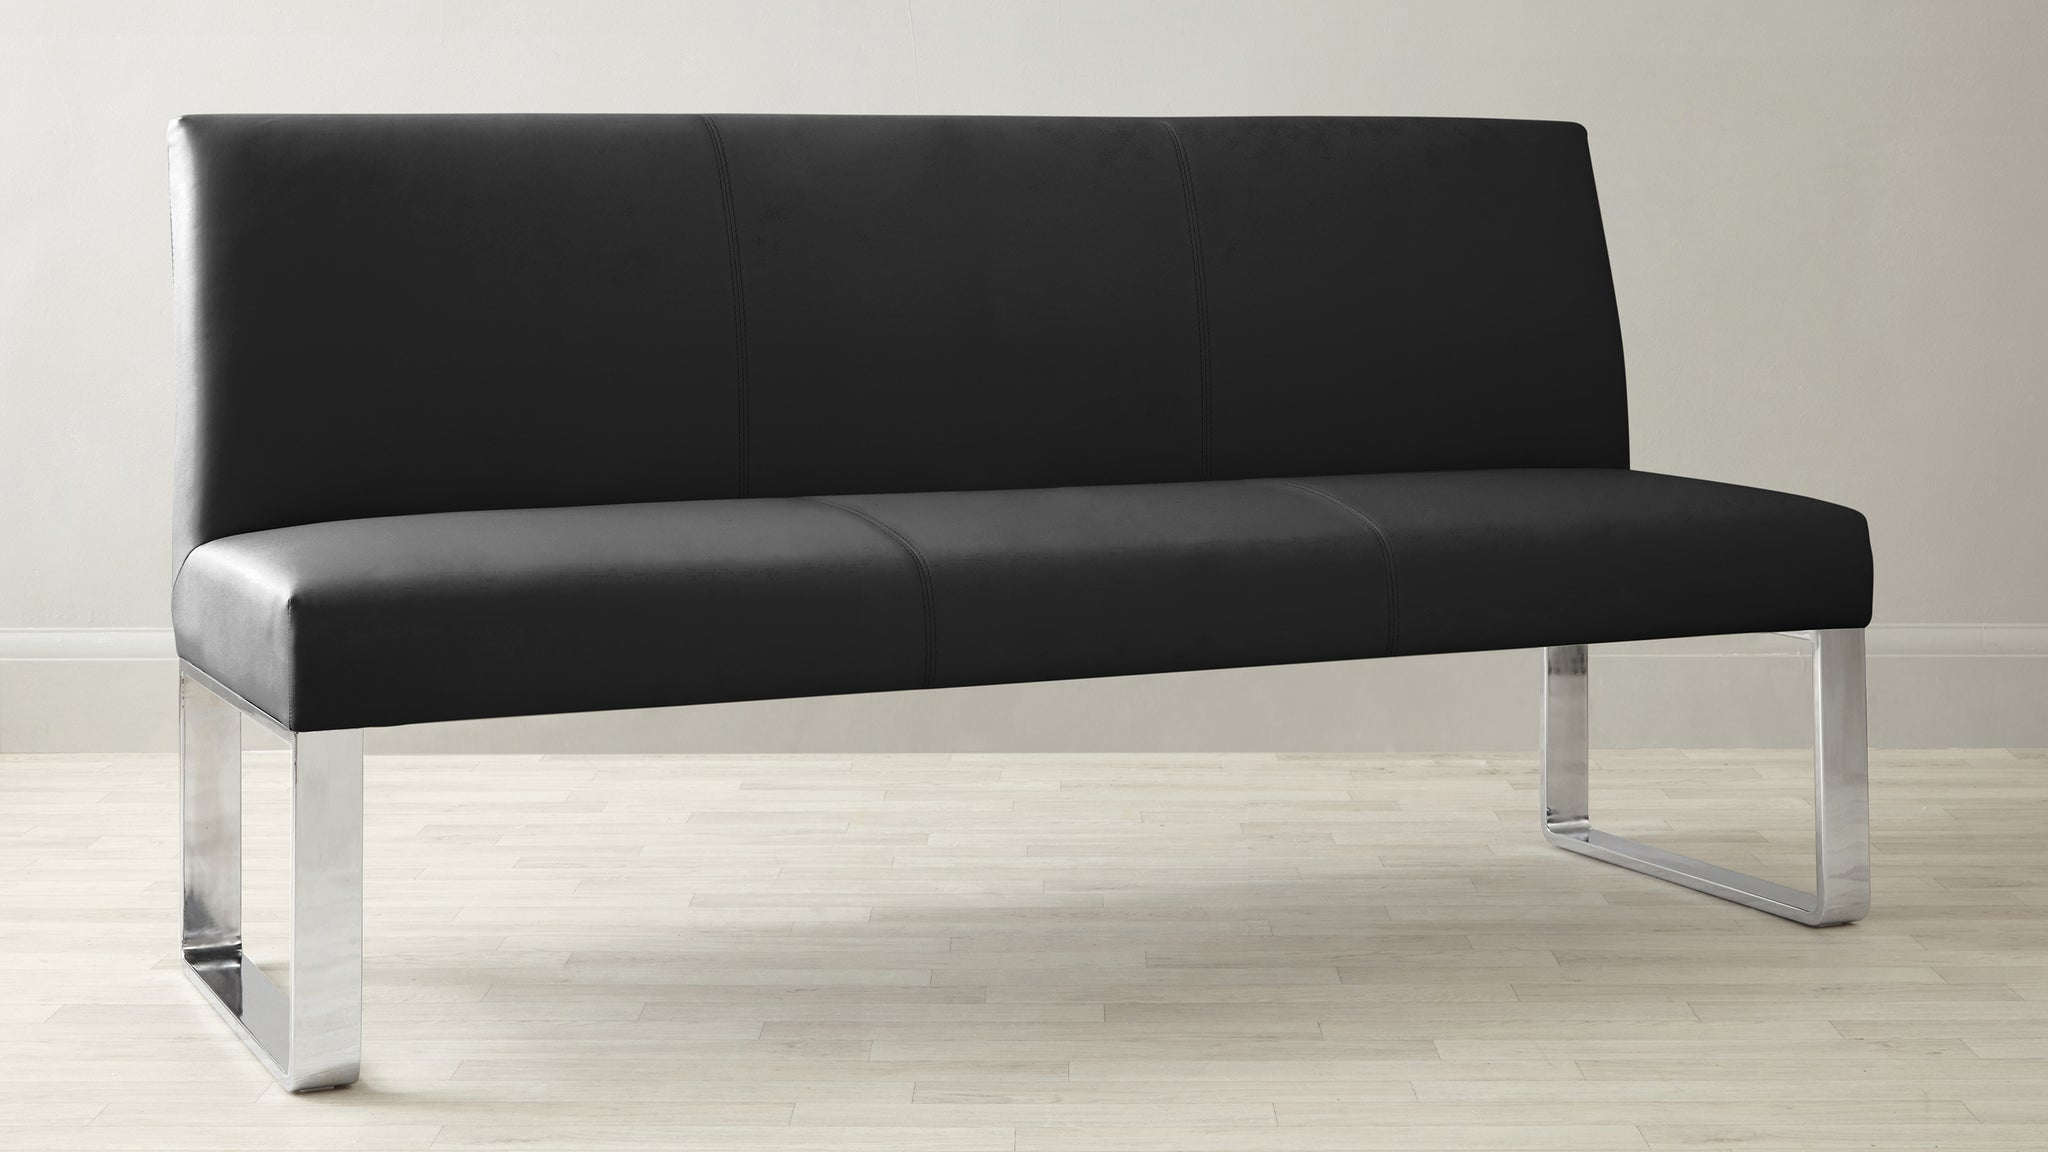 Loop 3 Seater Black Faux Leather & Stainless Steel Bench Without Backrest